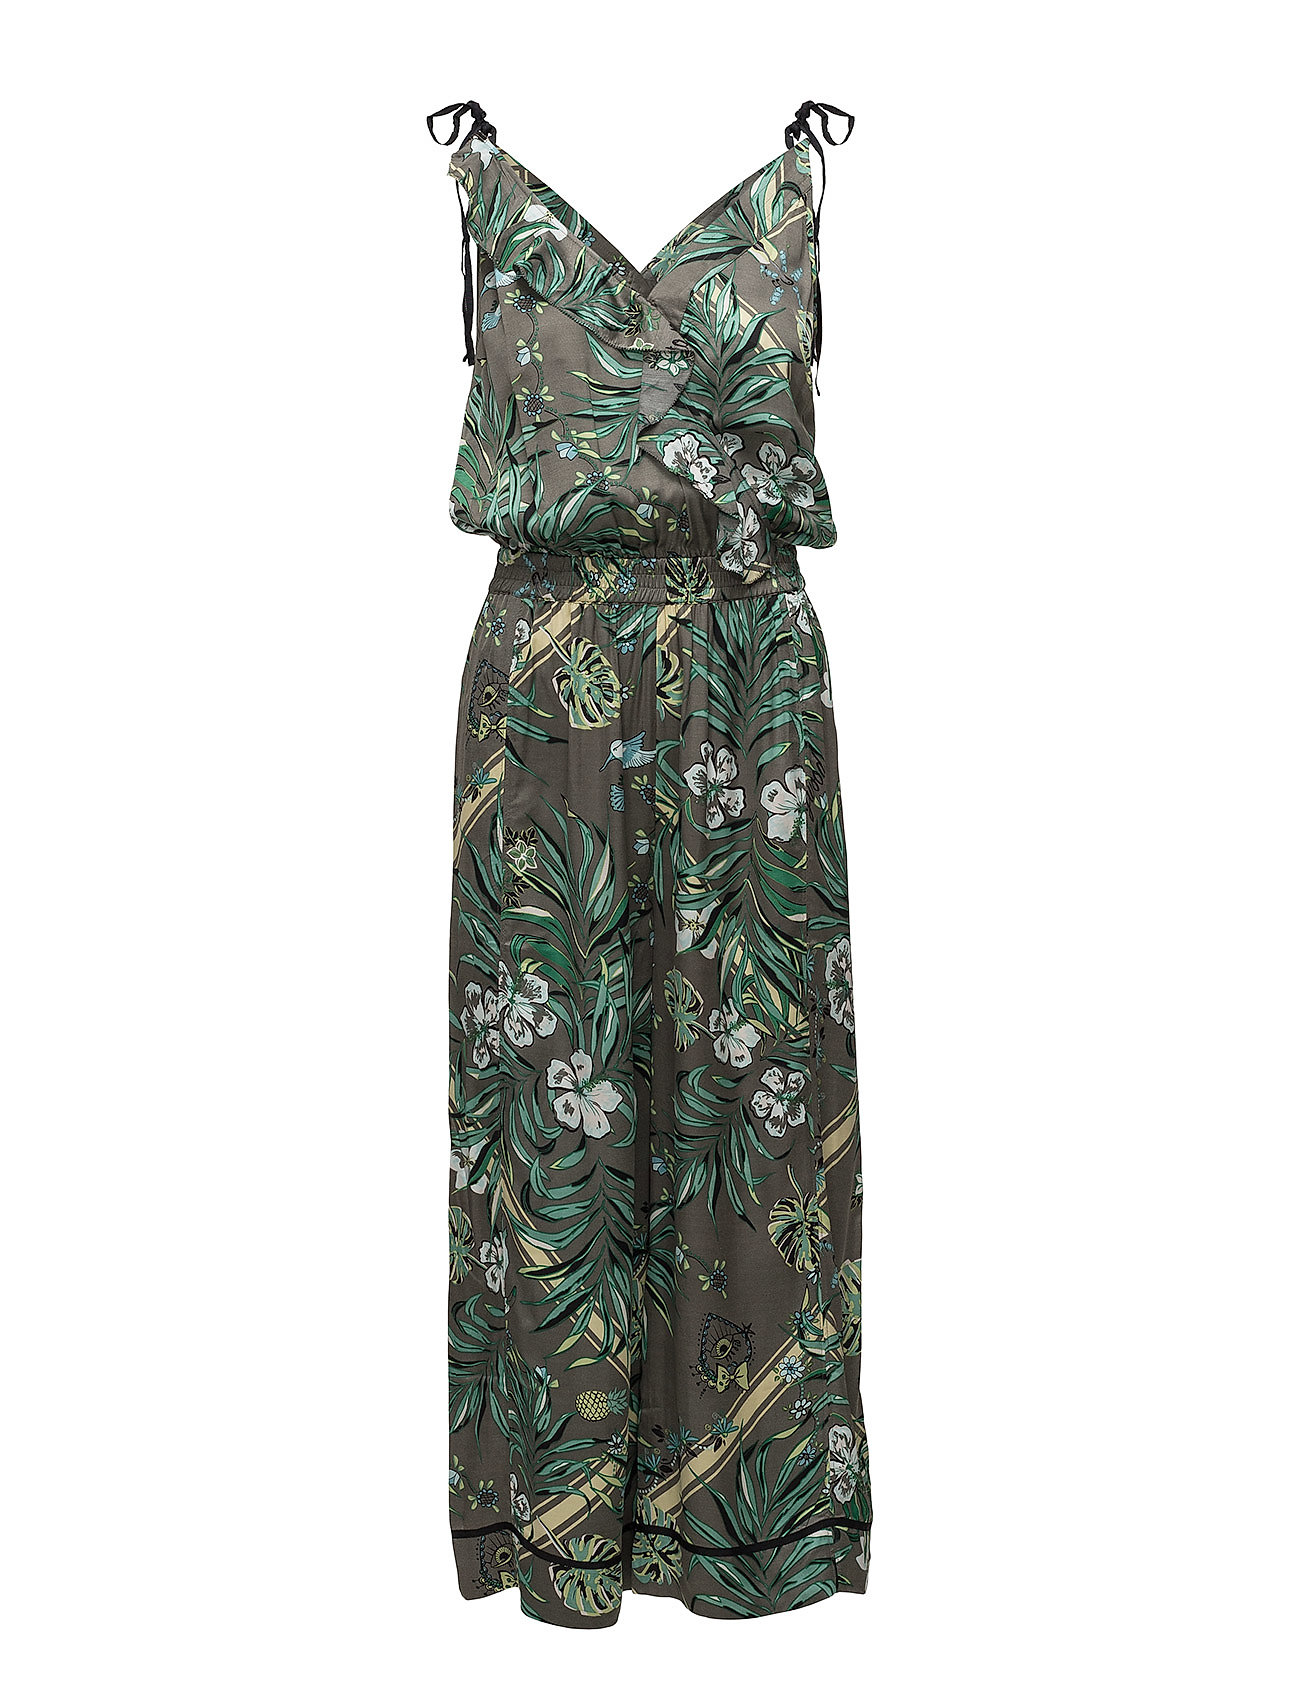 ODD MOLLY passionista jumpsuit - MISTY GREEN